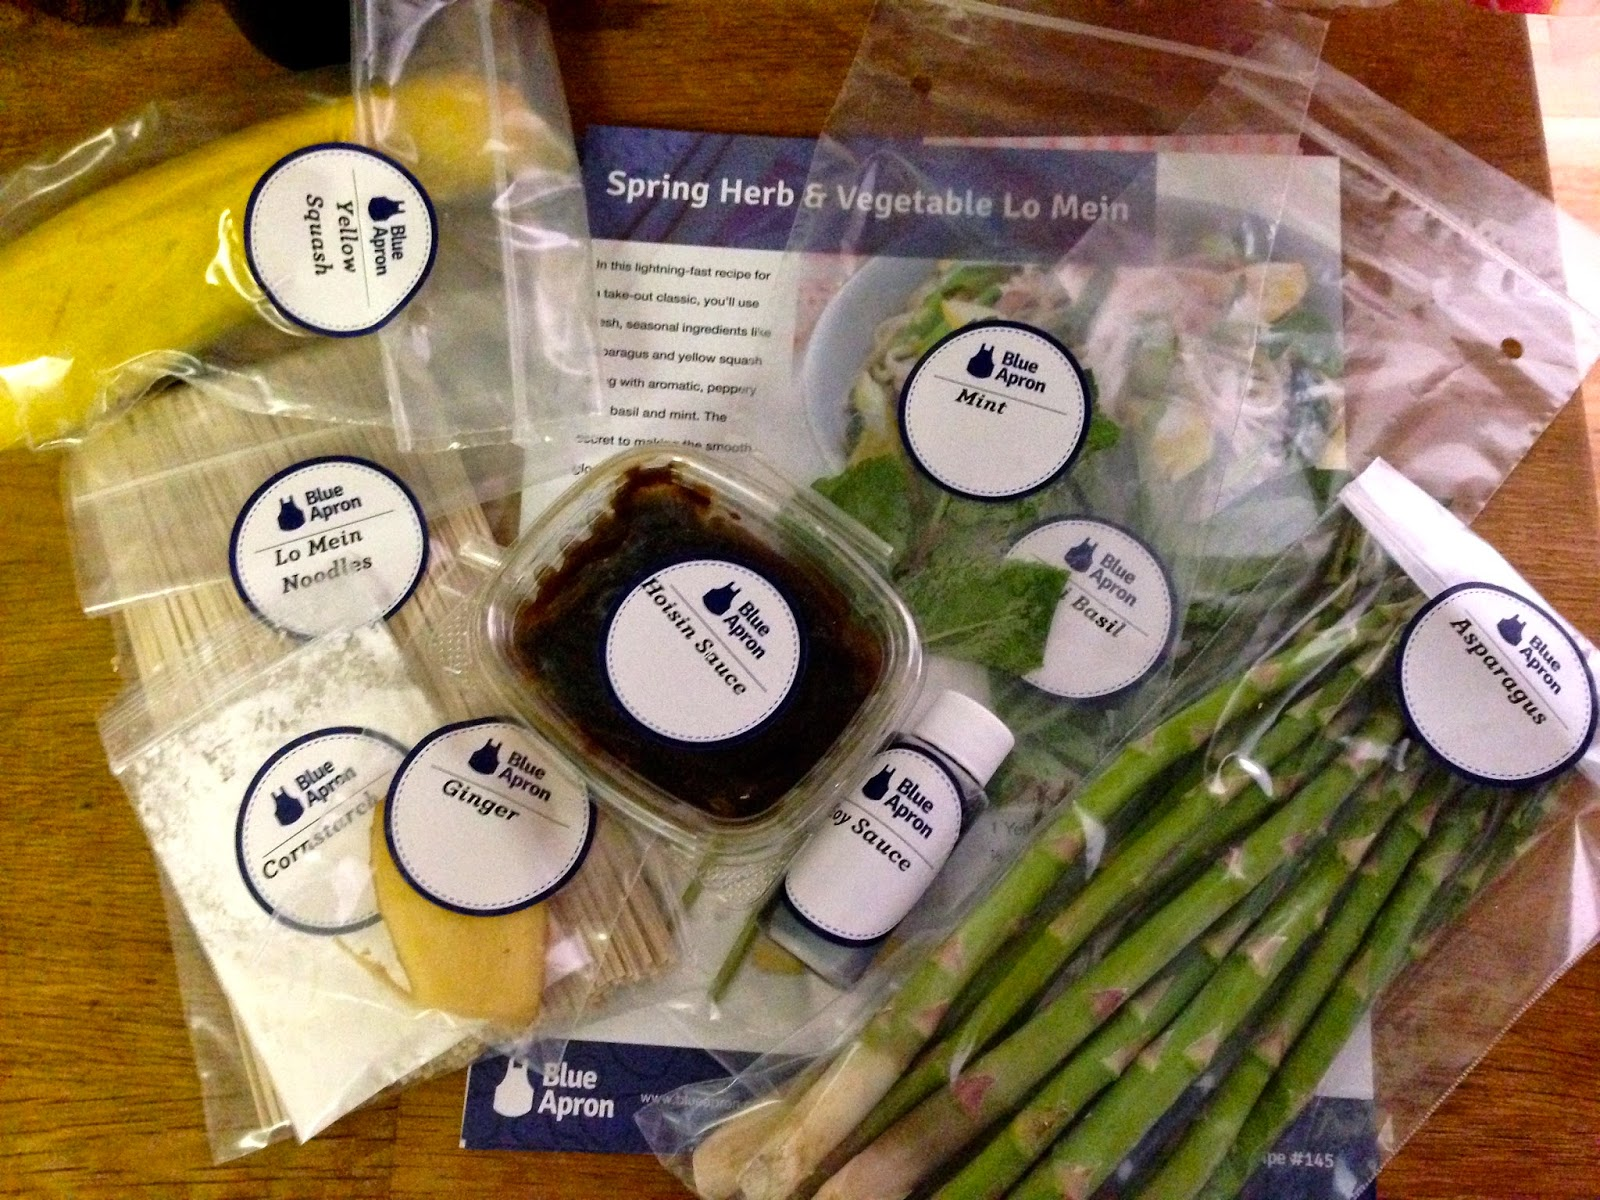 Blue apron yellow squash -  In This Lighting Fast Recipe For A Take Out Classic You Ll Use Fresh Seasonal Ingredients Like Asparagus And Yellow Squash Along With Aromatic